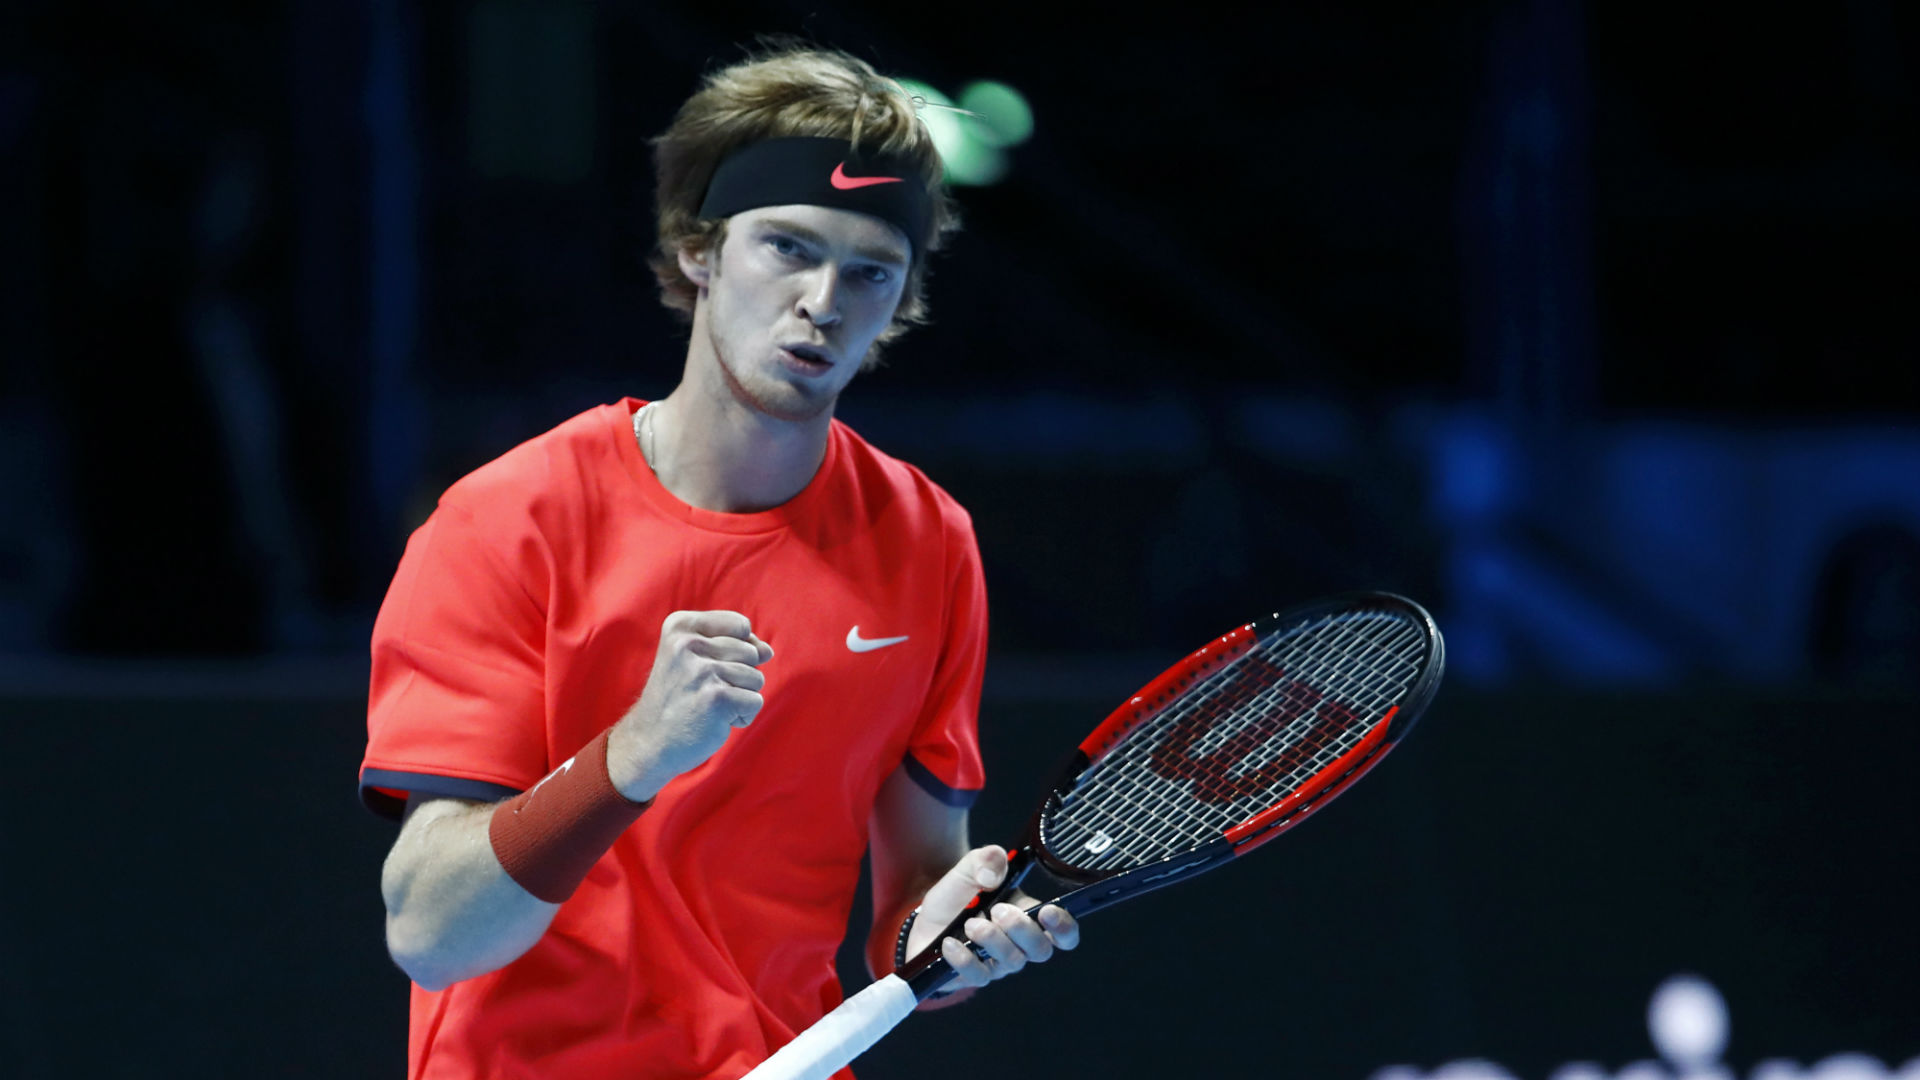 Alex de Minaur and Stefanos Tsitsipas are joined in the semi-finals by Andrey Rublev and Jaume Munar at the Next Gen Finals.